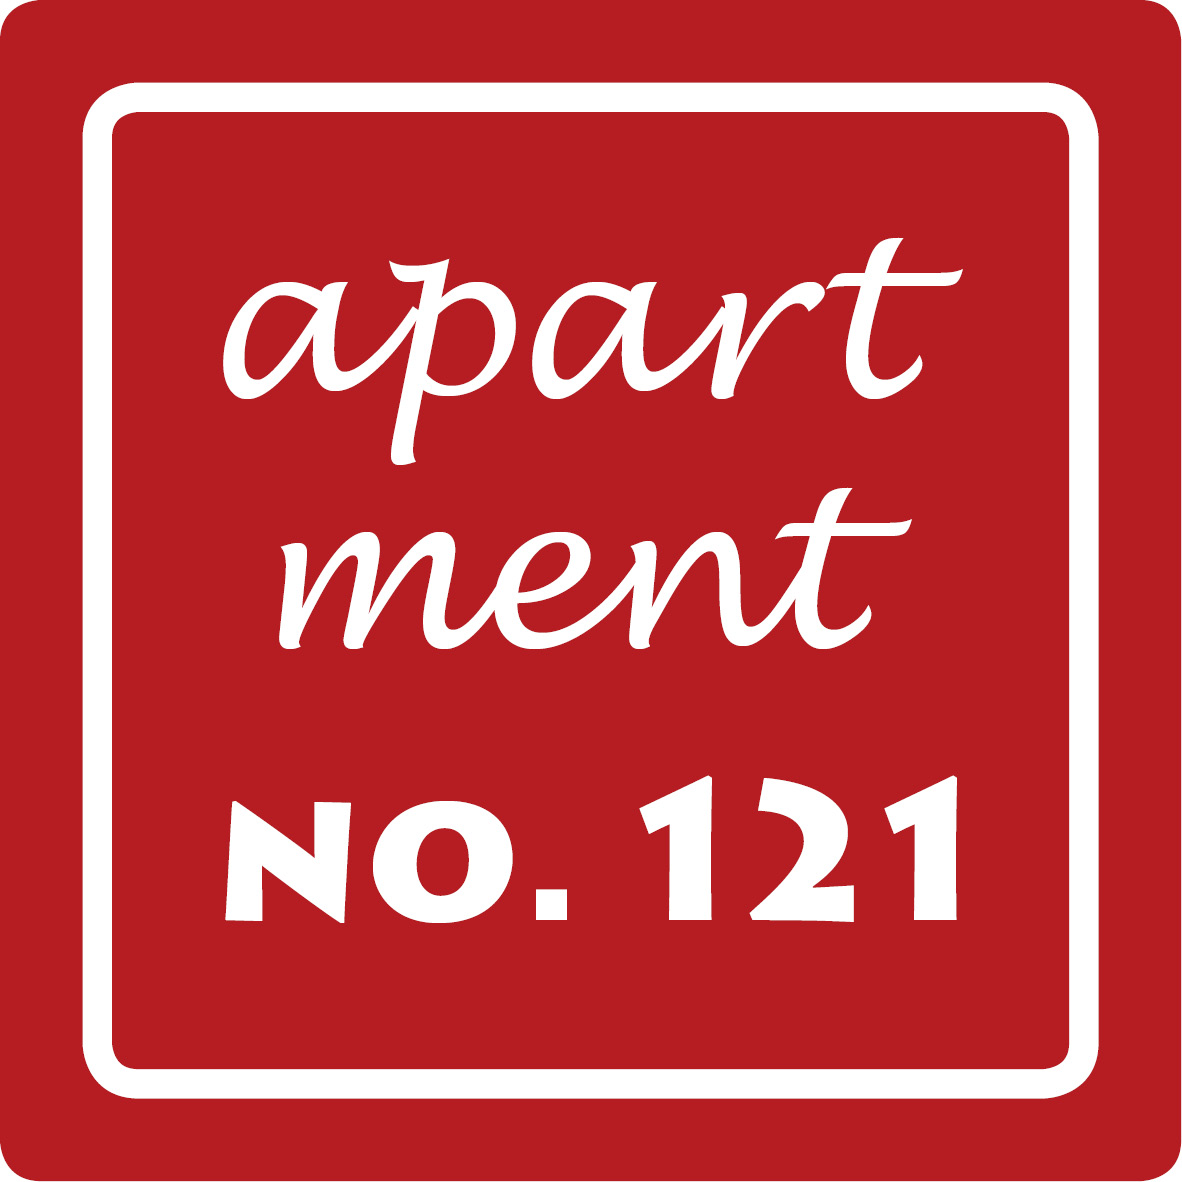 Apartment No. 121